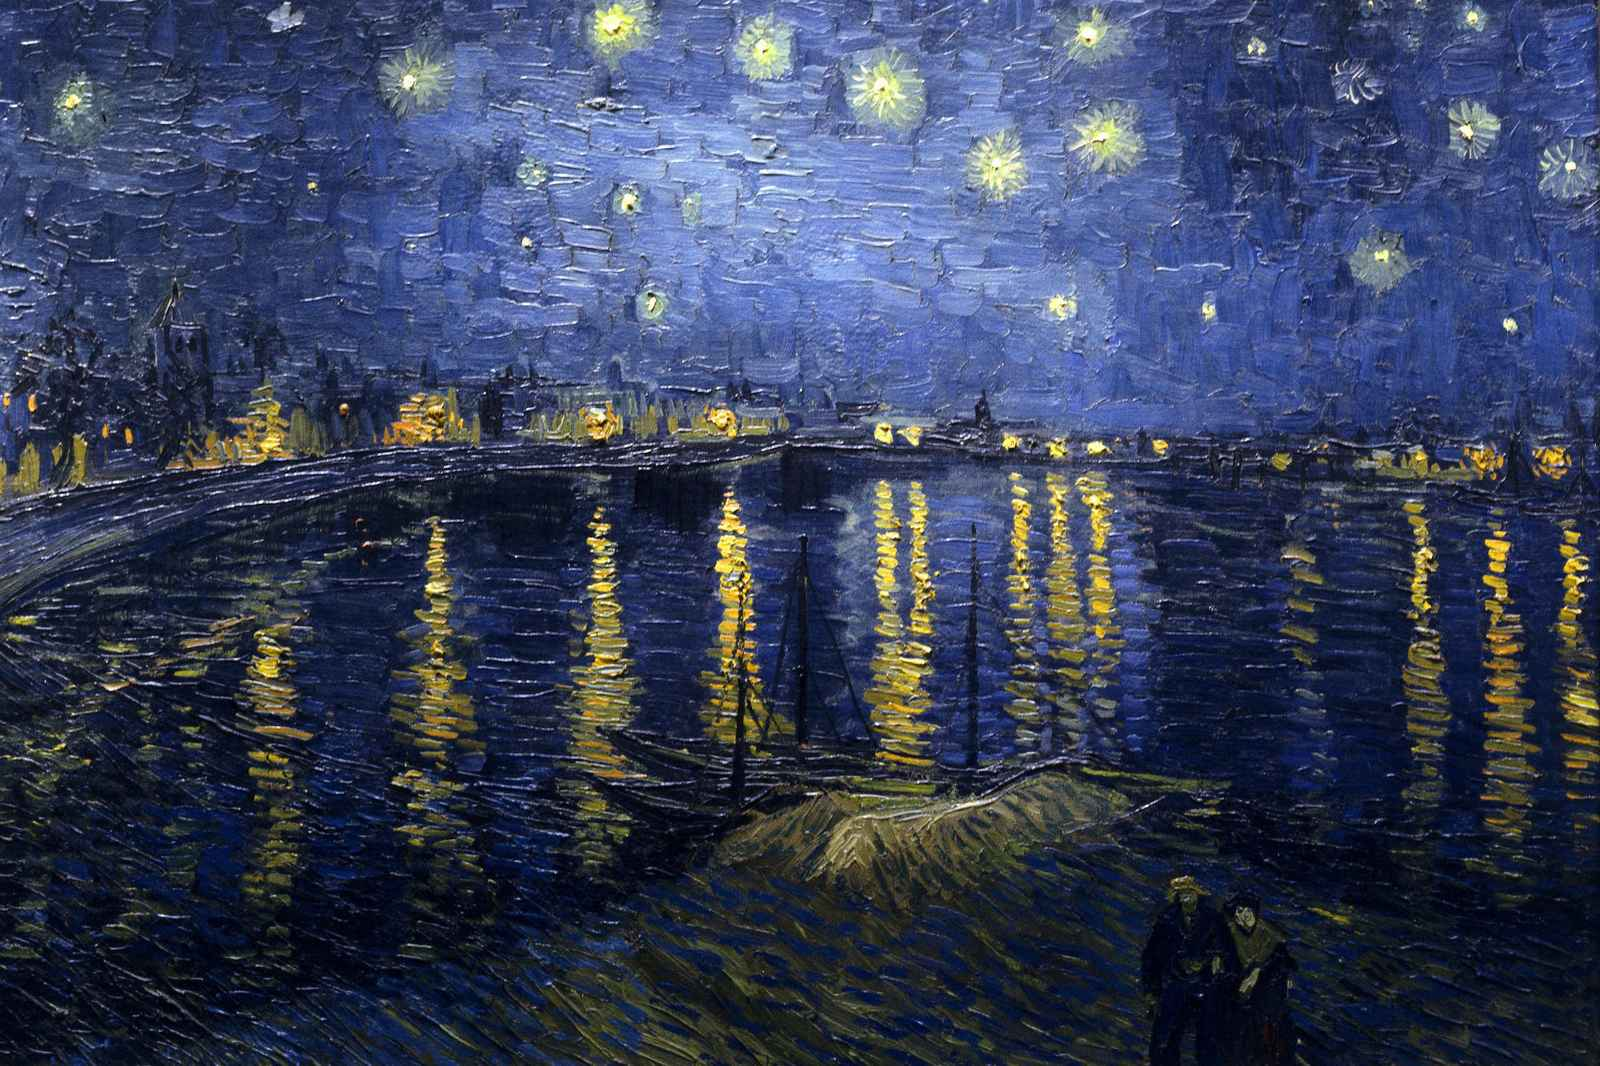 Starry_Night_Over_the_Rhone-van-gogh